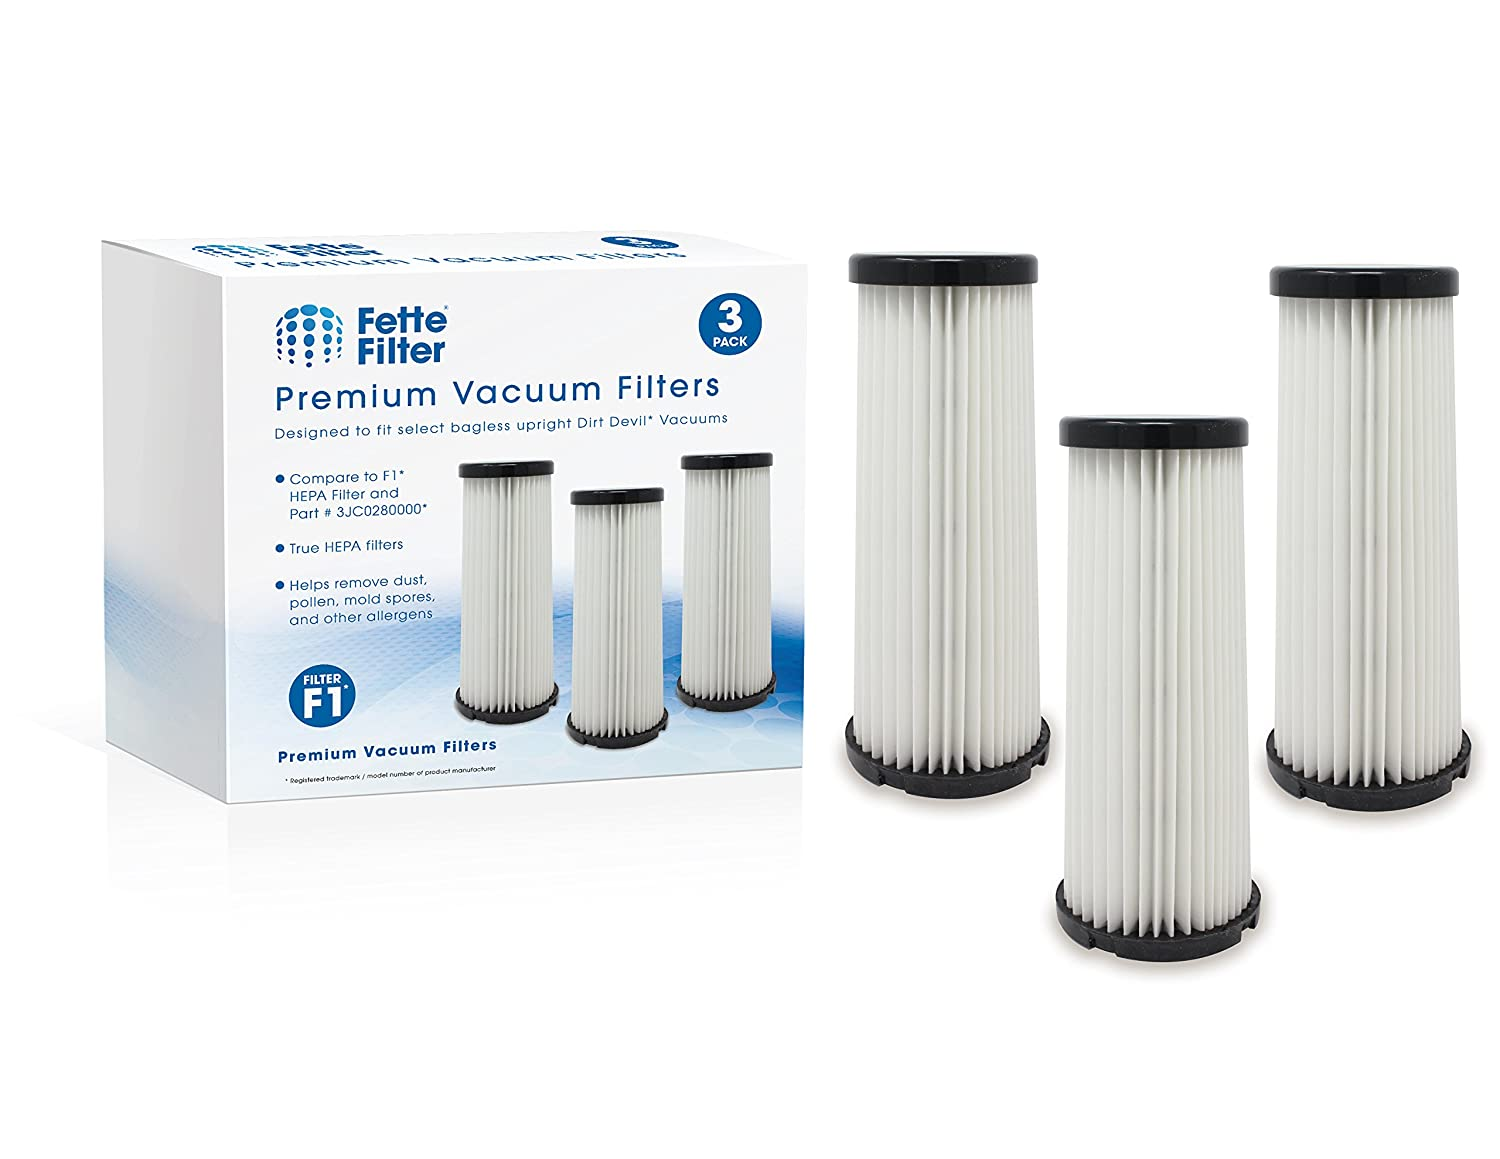 Dirt Devil F1 (F-1) Washable and Reusable Compatible Filter. Compare to Dirt Devil Part #'s 3JC0280000, 3-JC0280-000 & 2JC0280000, 2-JC0280-000 (Pack of 3) Fette Filter FF1136